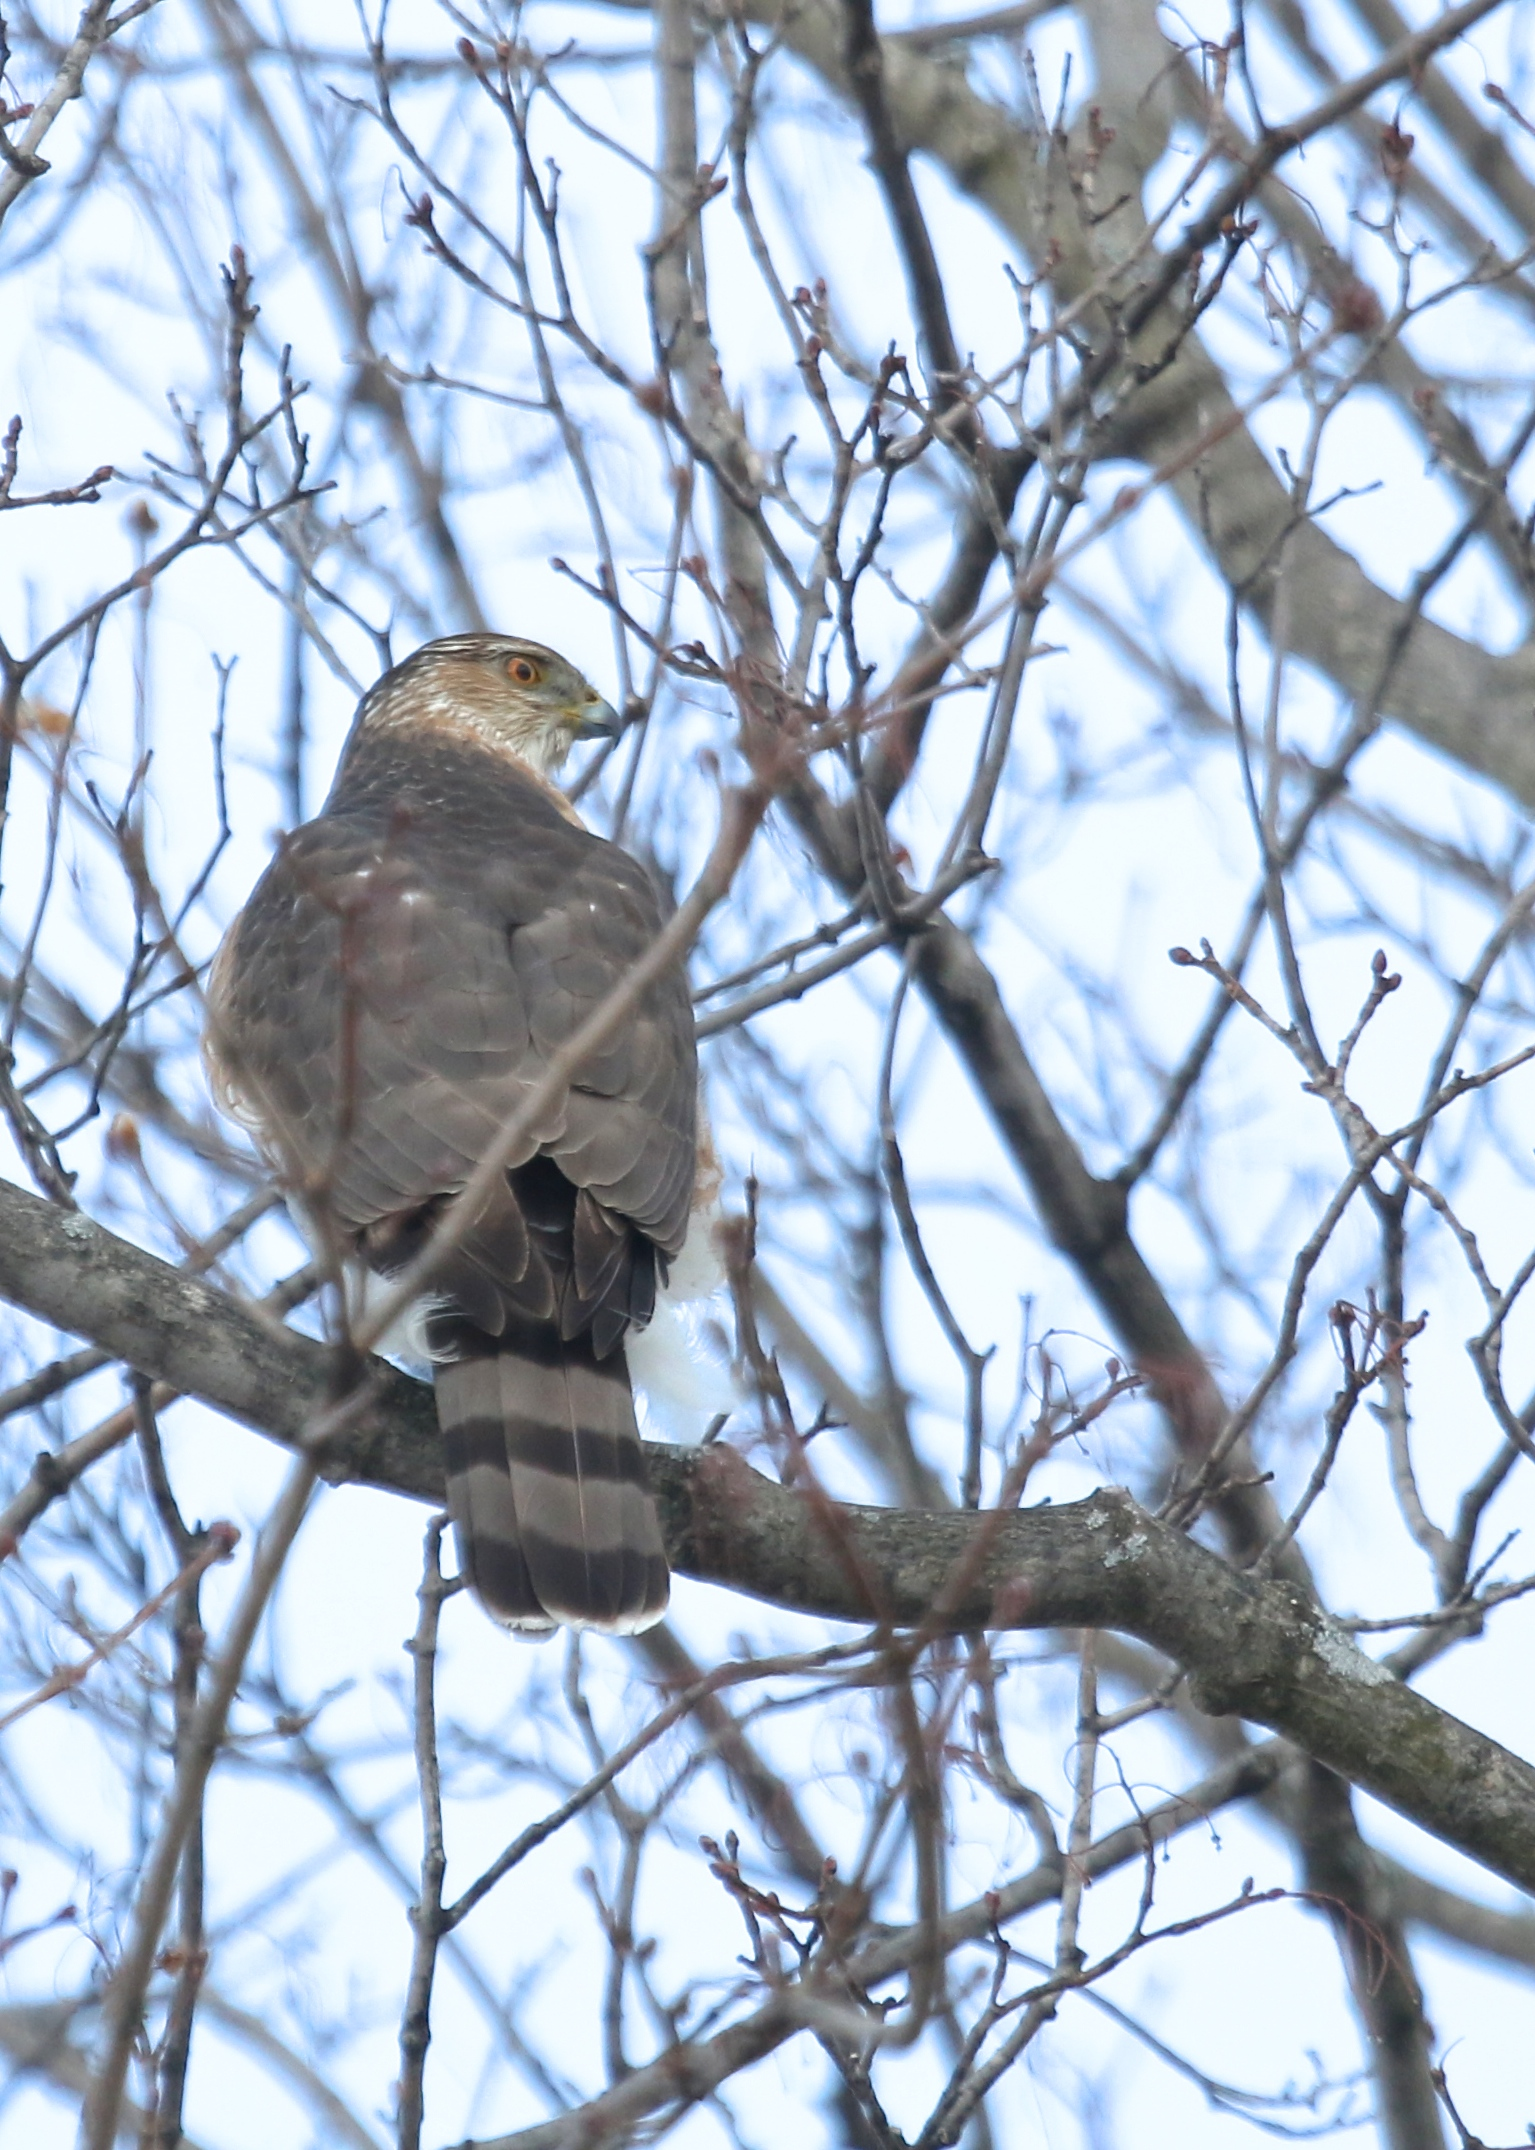 Cooper's Hawk in Ulster Park NY, 2/27/14.